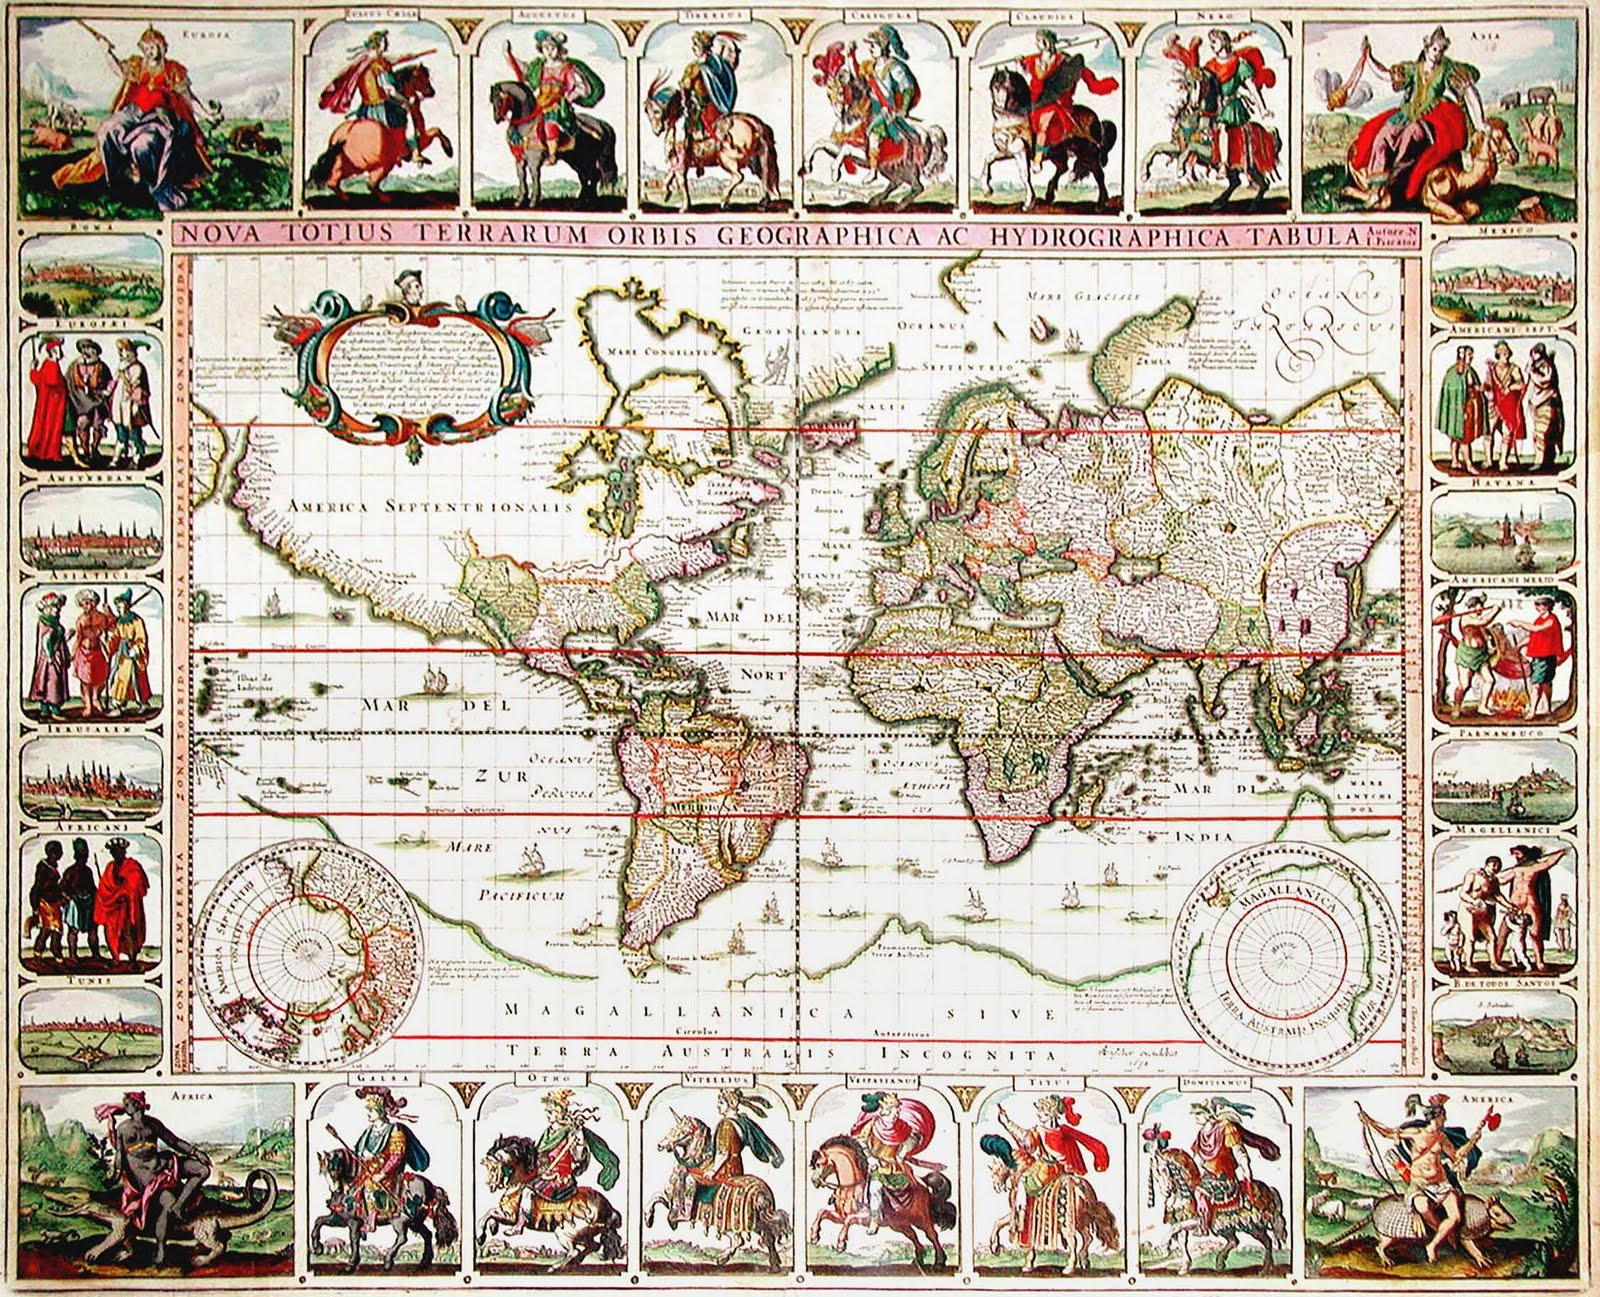 Graham arader rare world map of the day nova totius terrarum a stunning and extremely rare world map by a seminal dutch mapmaker gumiabroncs Choice Image